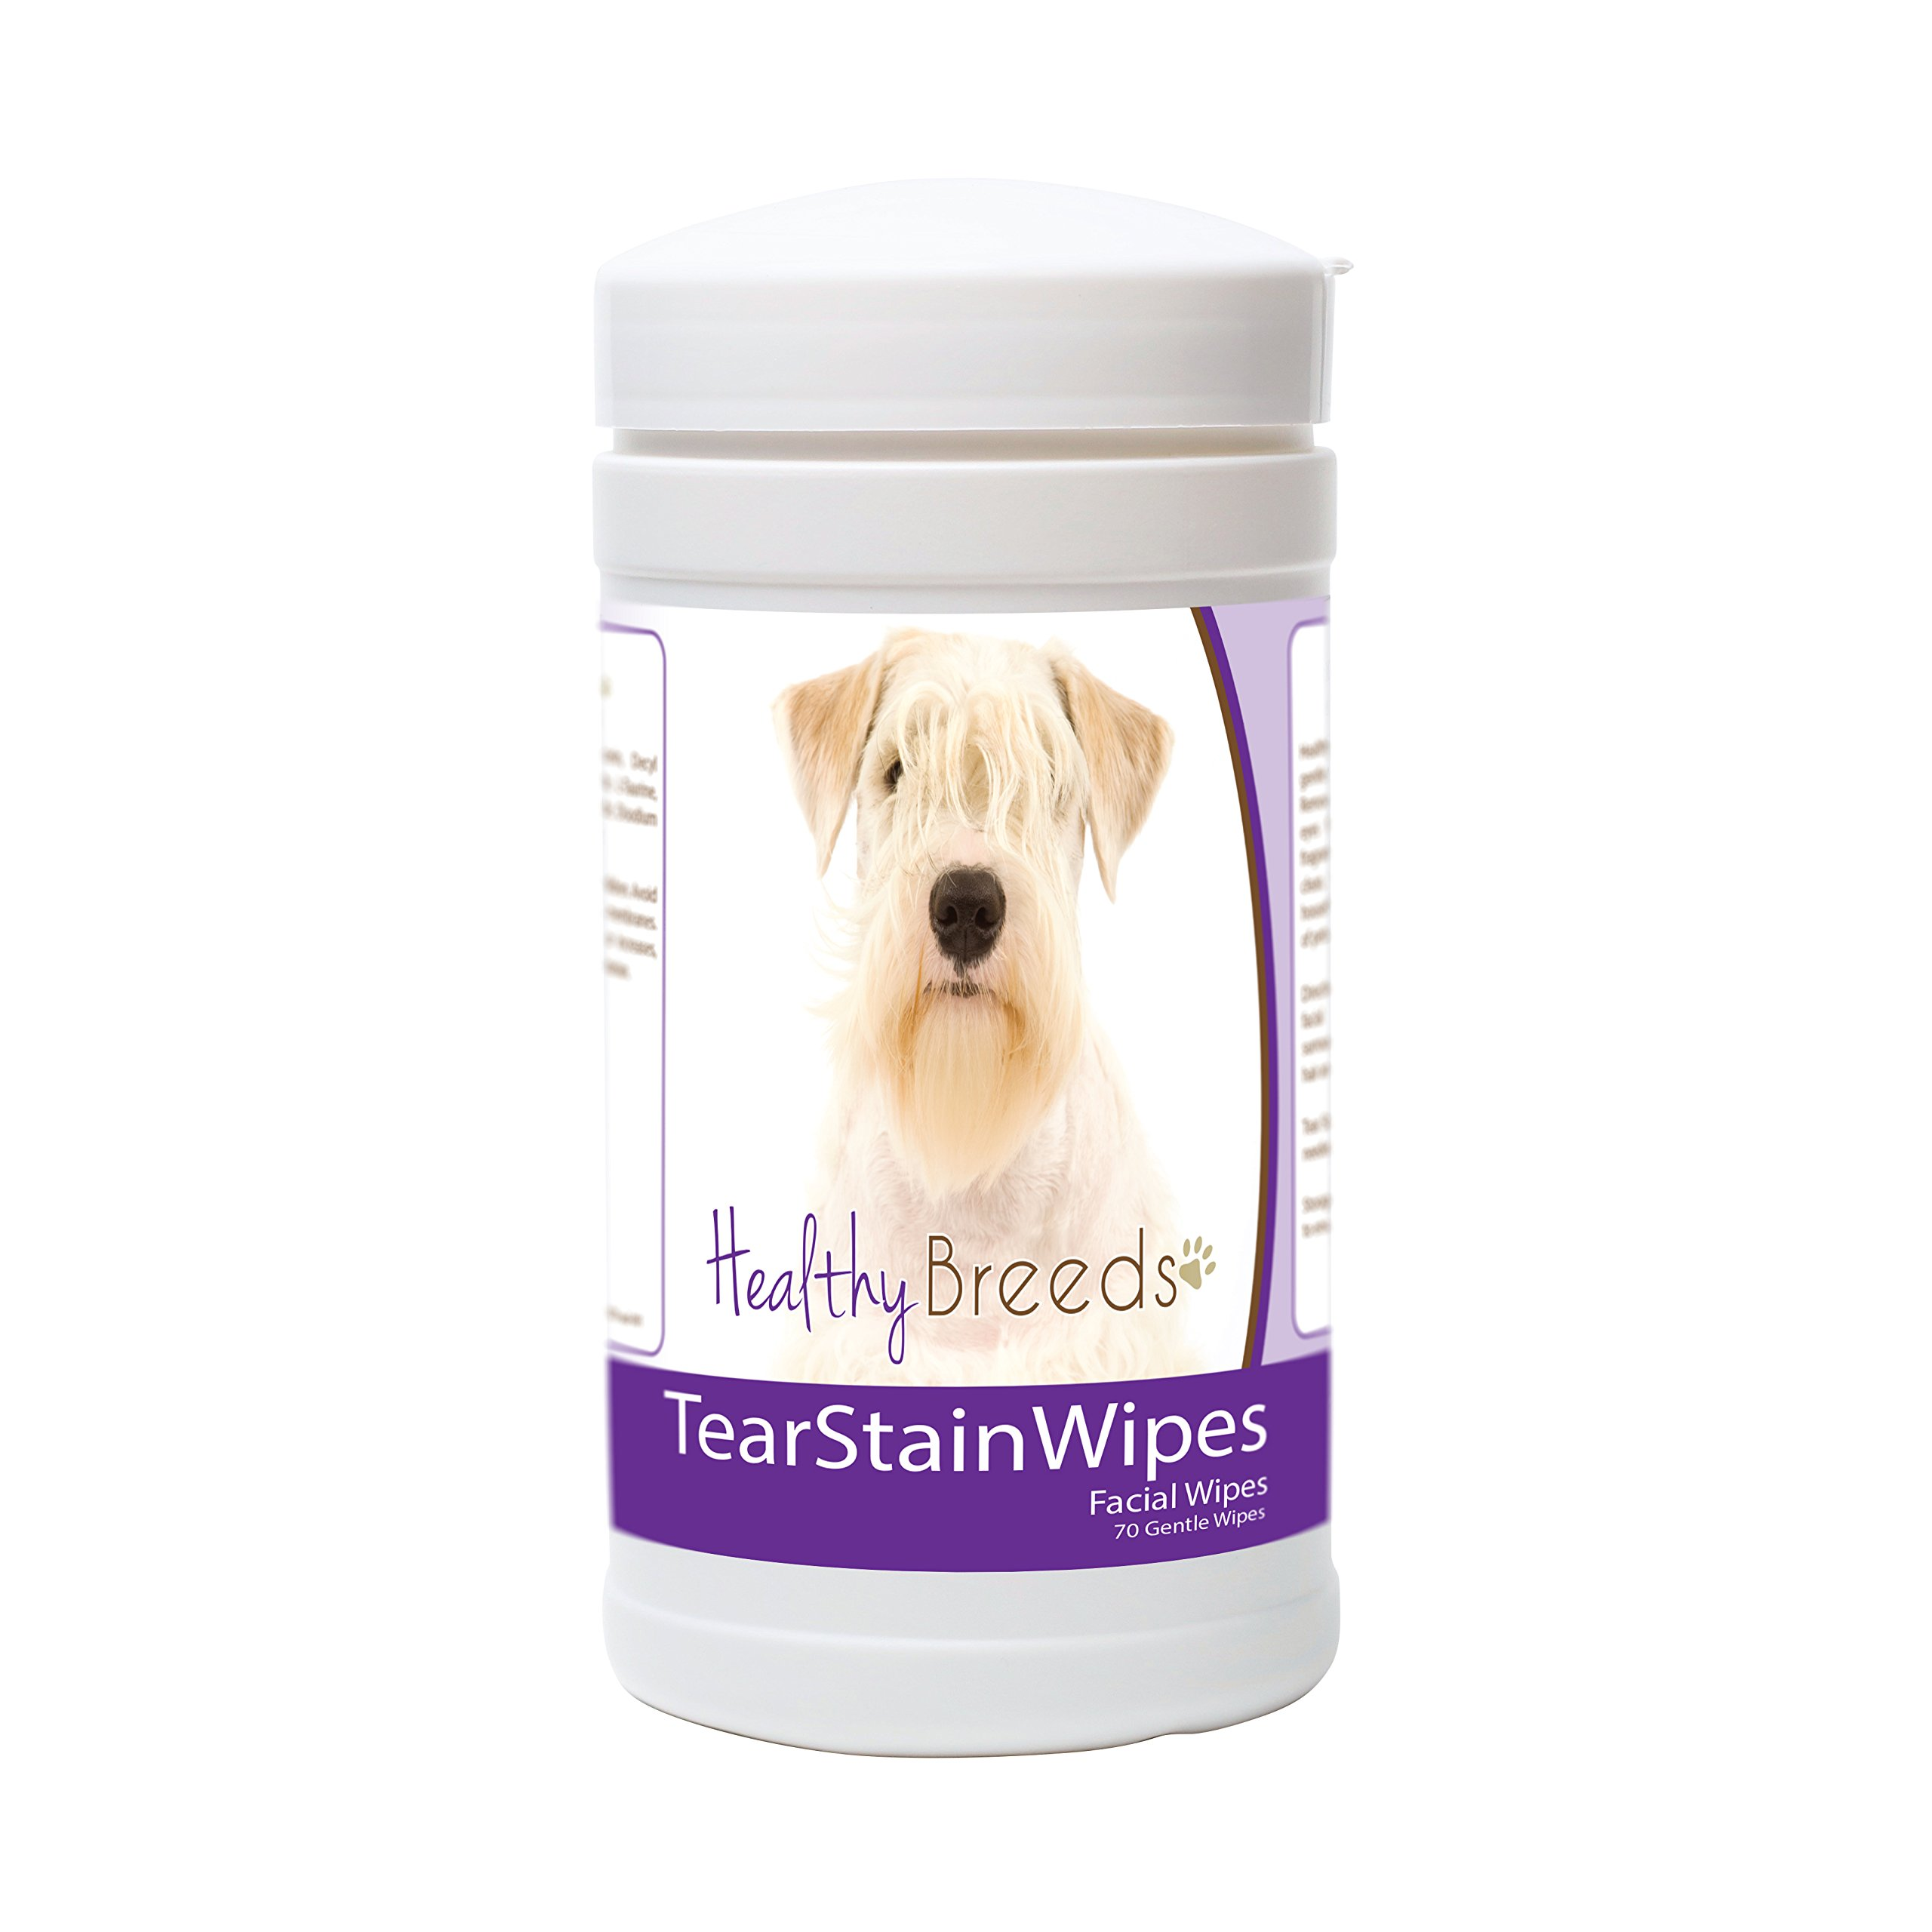 Healthy Breeds Dog Tear Stain & Facial Wipes for Sealyham Terrier - Over 200 Breeds - Facial Eye Cleaner - 70 Wipes - Cleans Crust Stains Mucus Saliva - Mild Gentle Fragrance Free